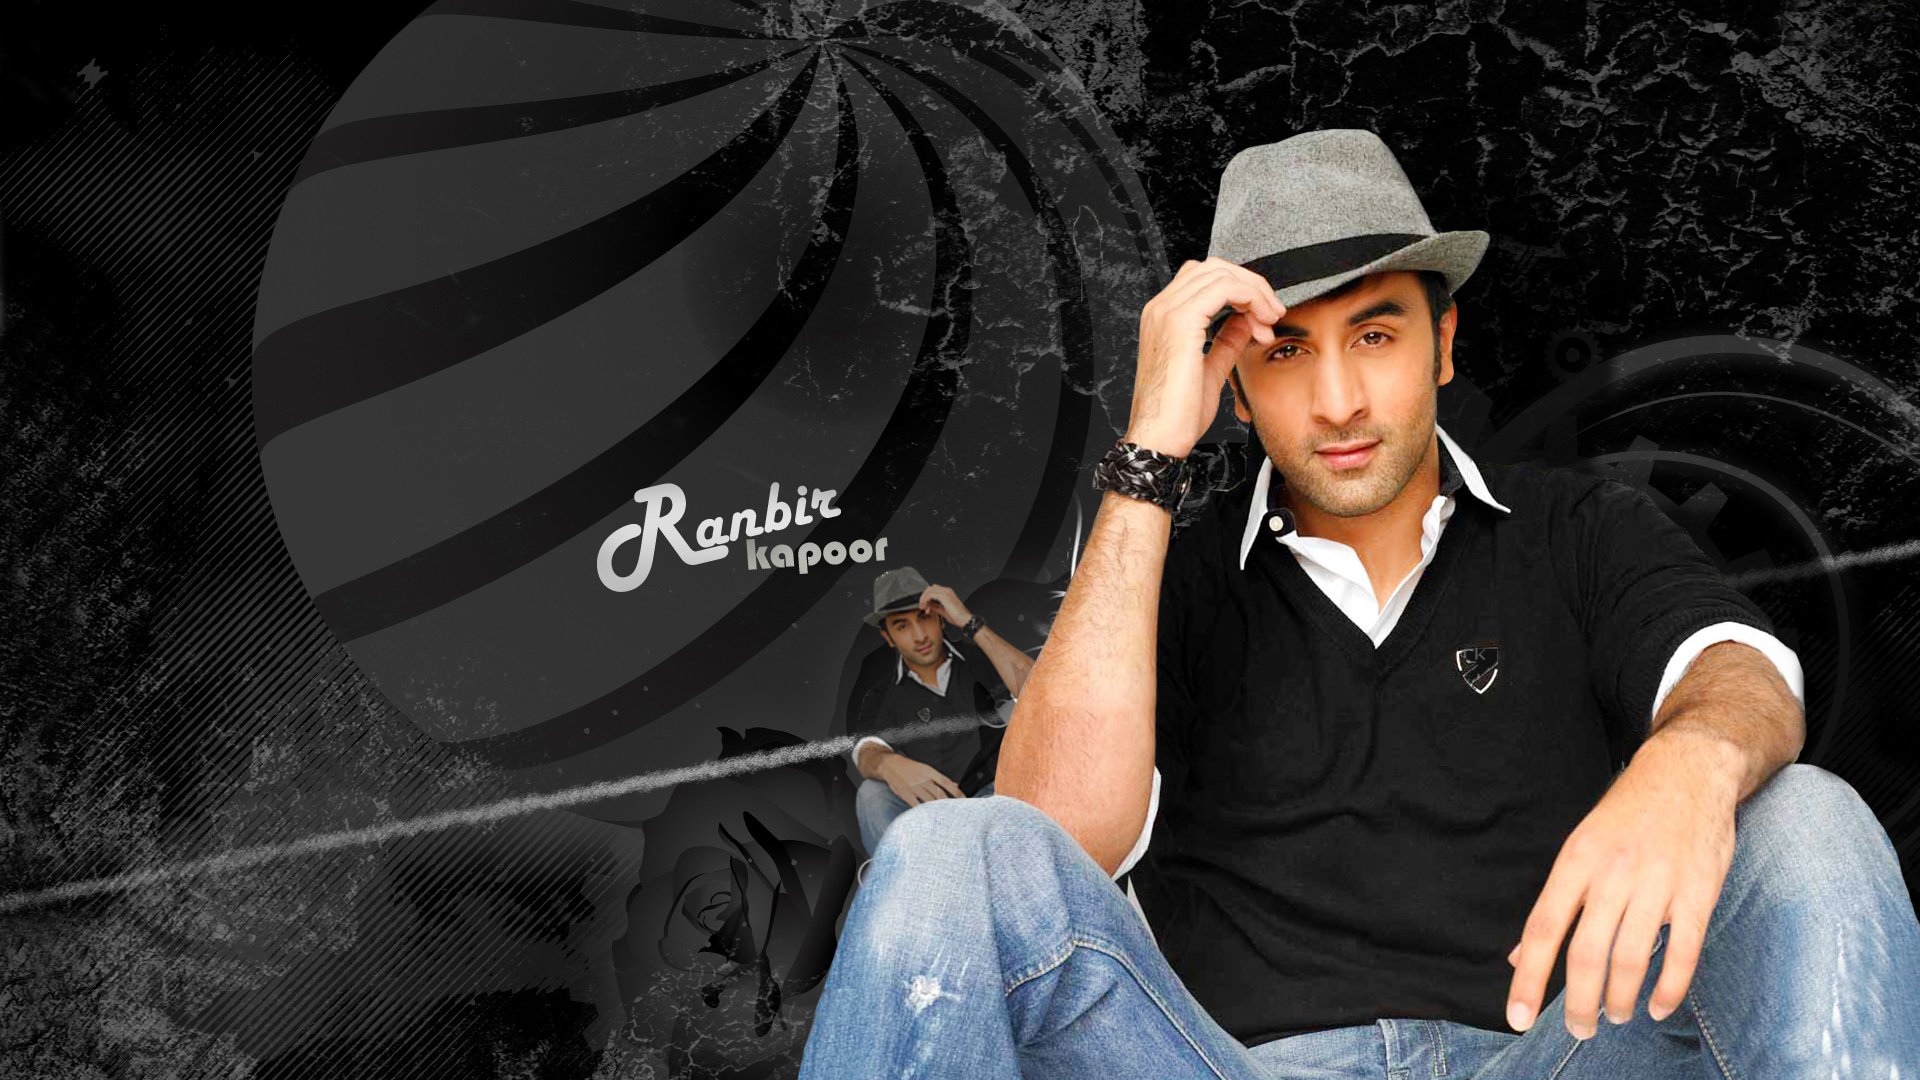 Ranbir Kapoor HD Wallpapers 1920x1080p